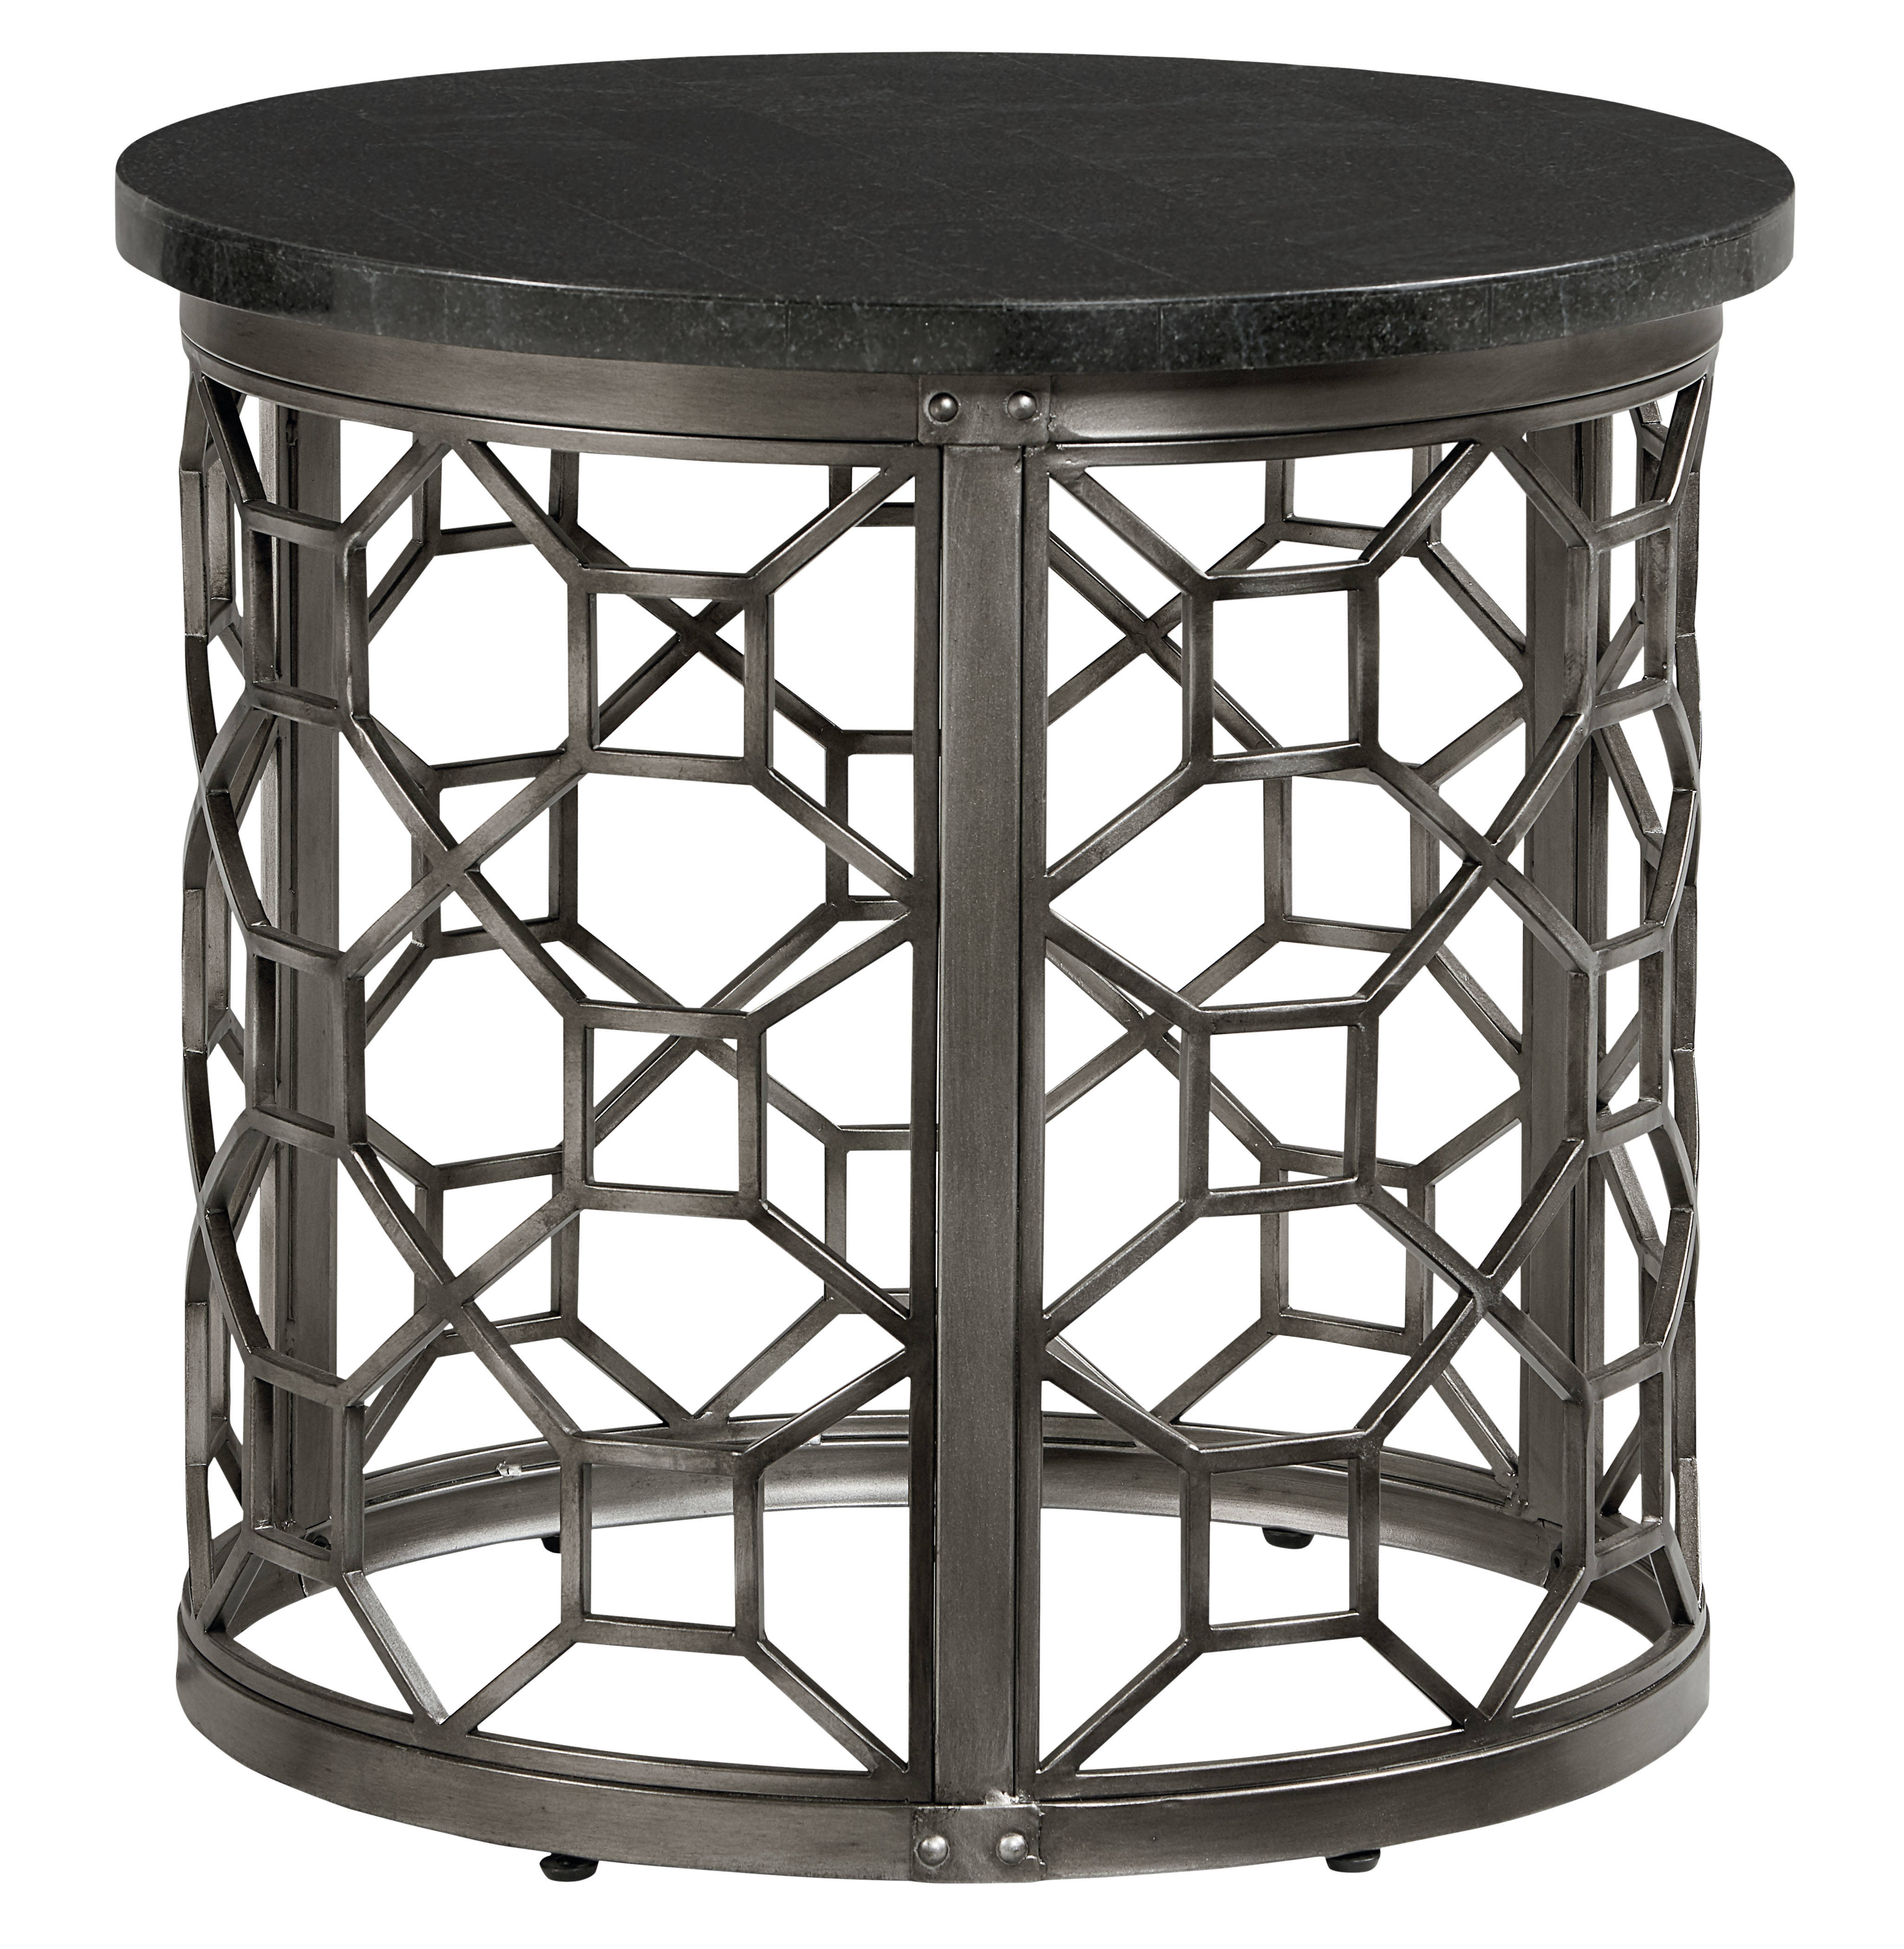 Standard Furniture Equinox Pewter Round End Table Top